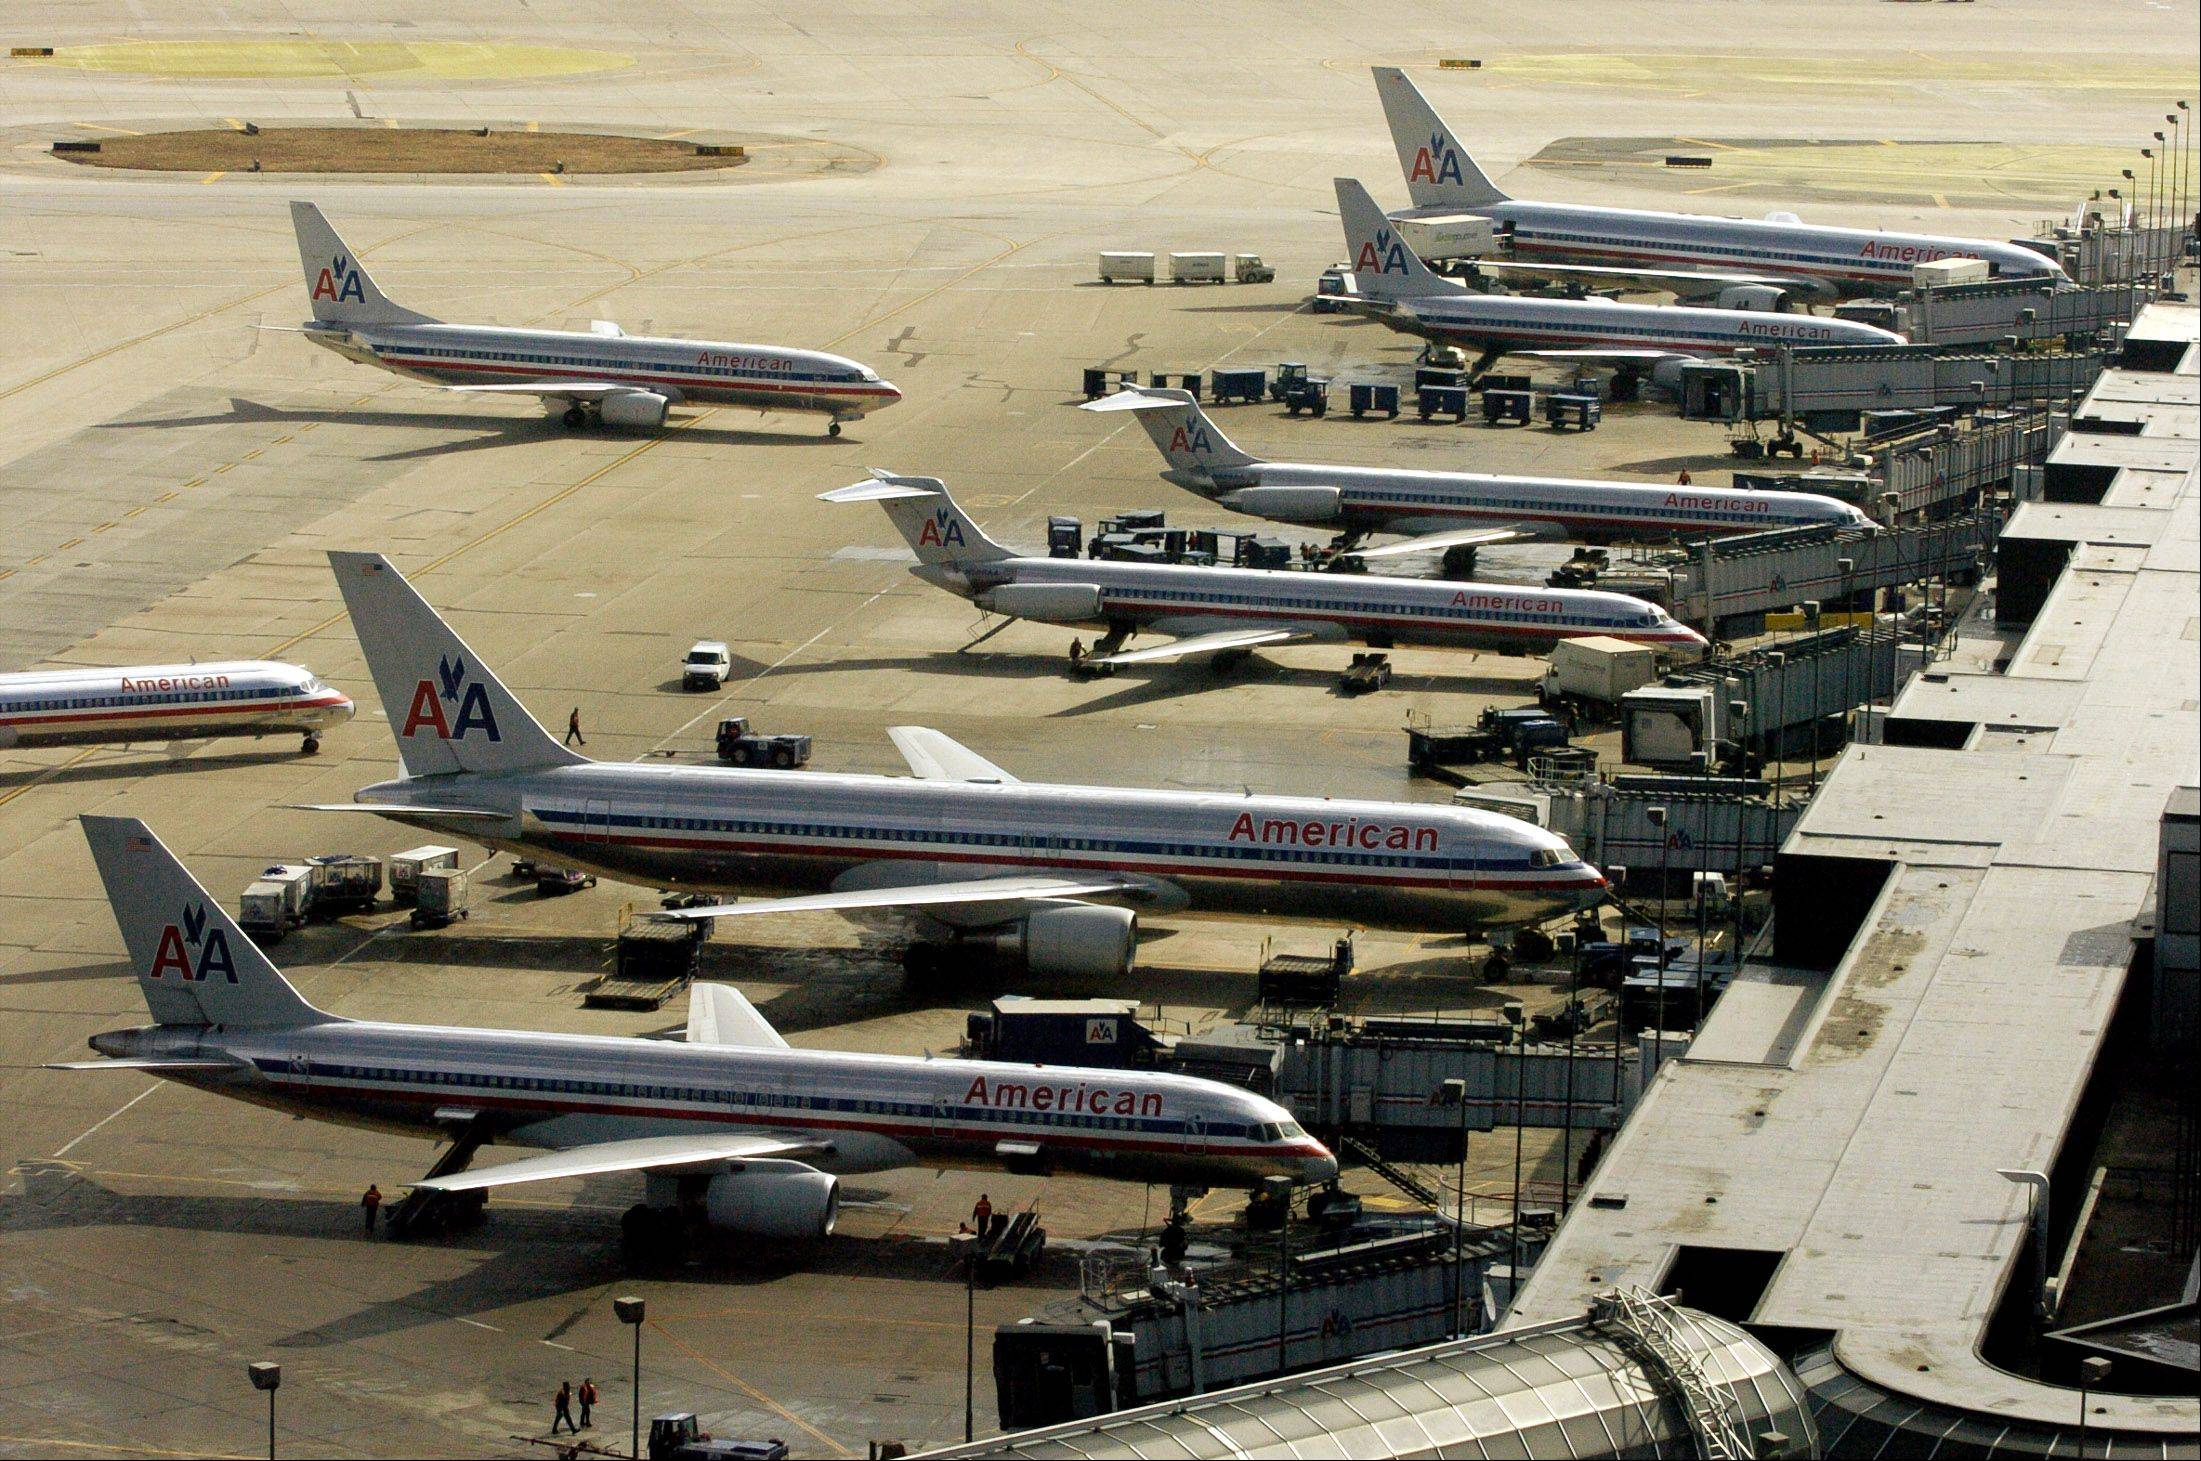 The much-discussed potential merger of American and US Airways continues to look more likely.